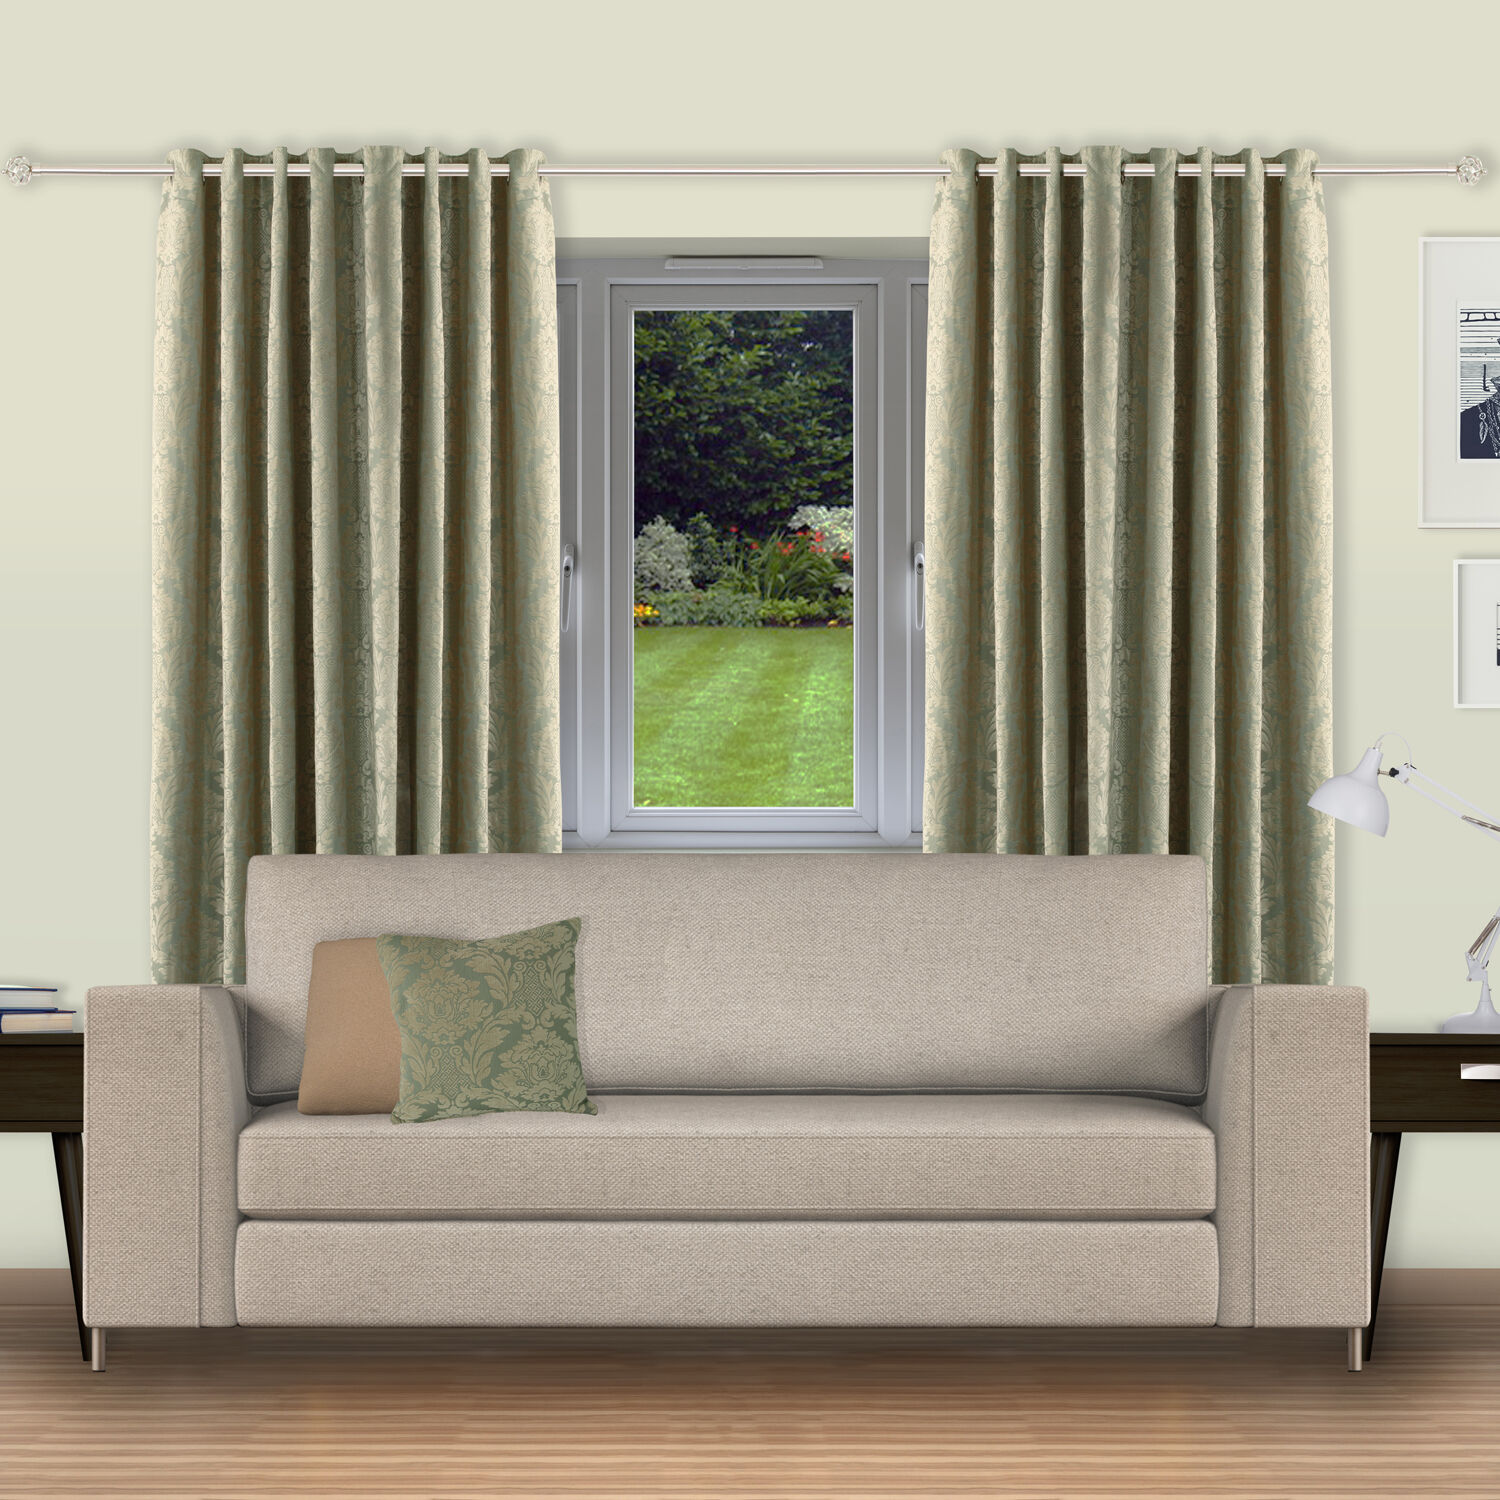 Versailles Damask Curtains - Duck Egg 070116 & Curtains - Home Store + More